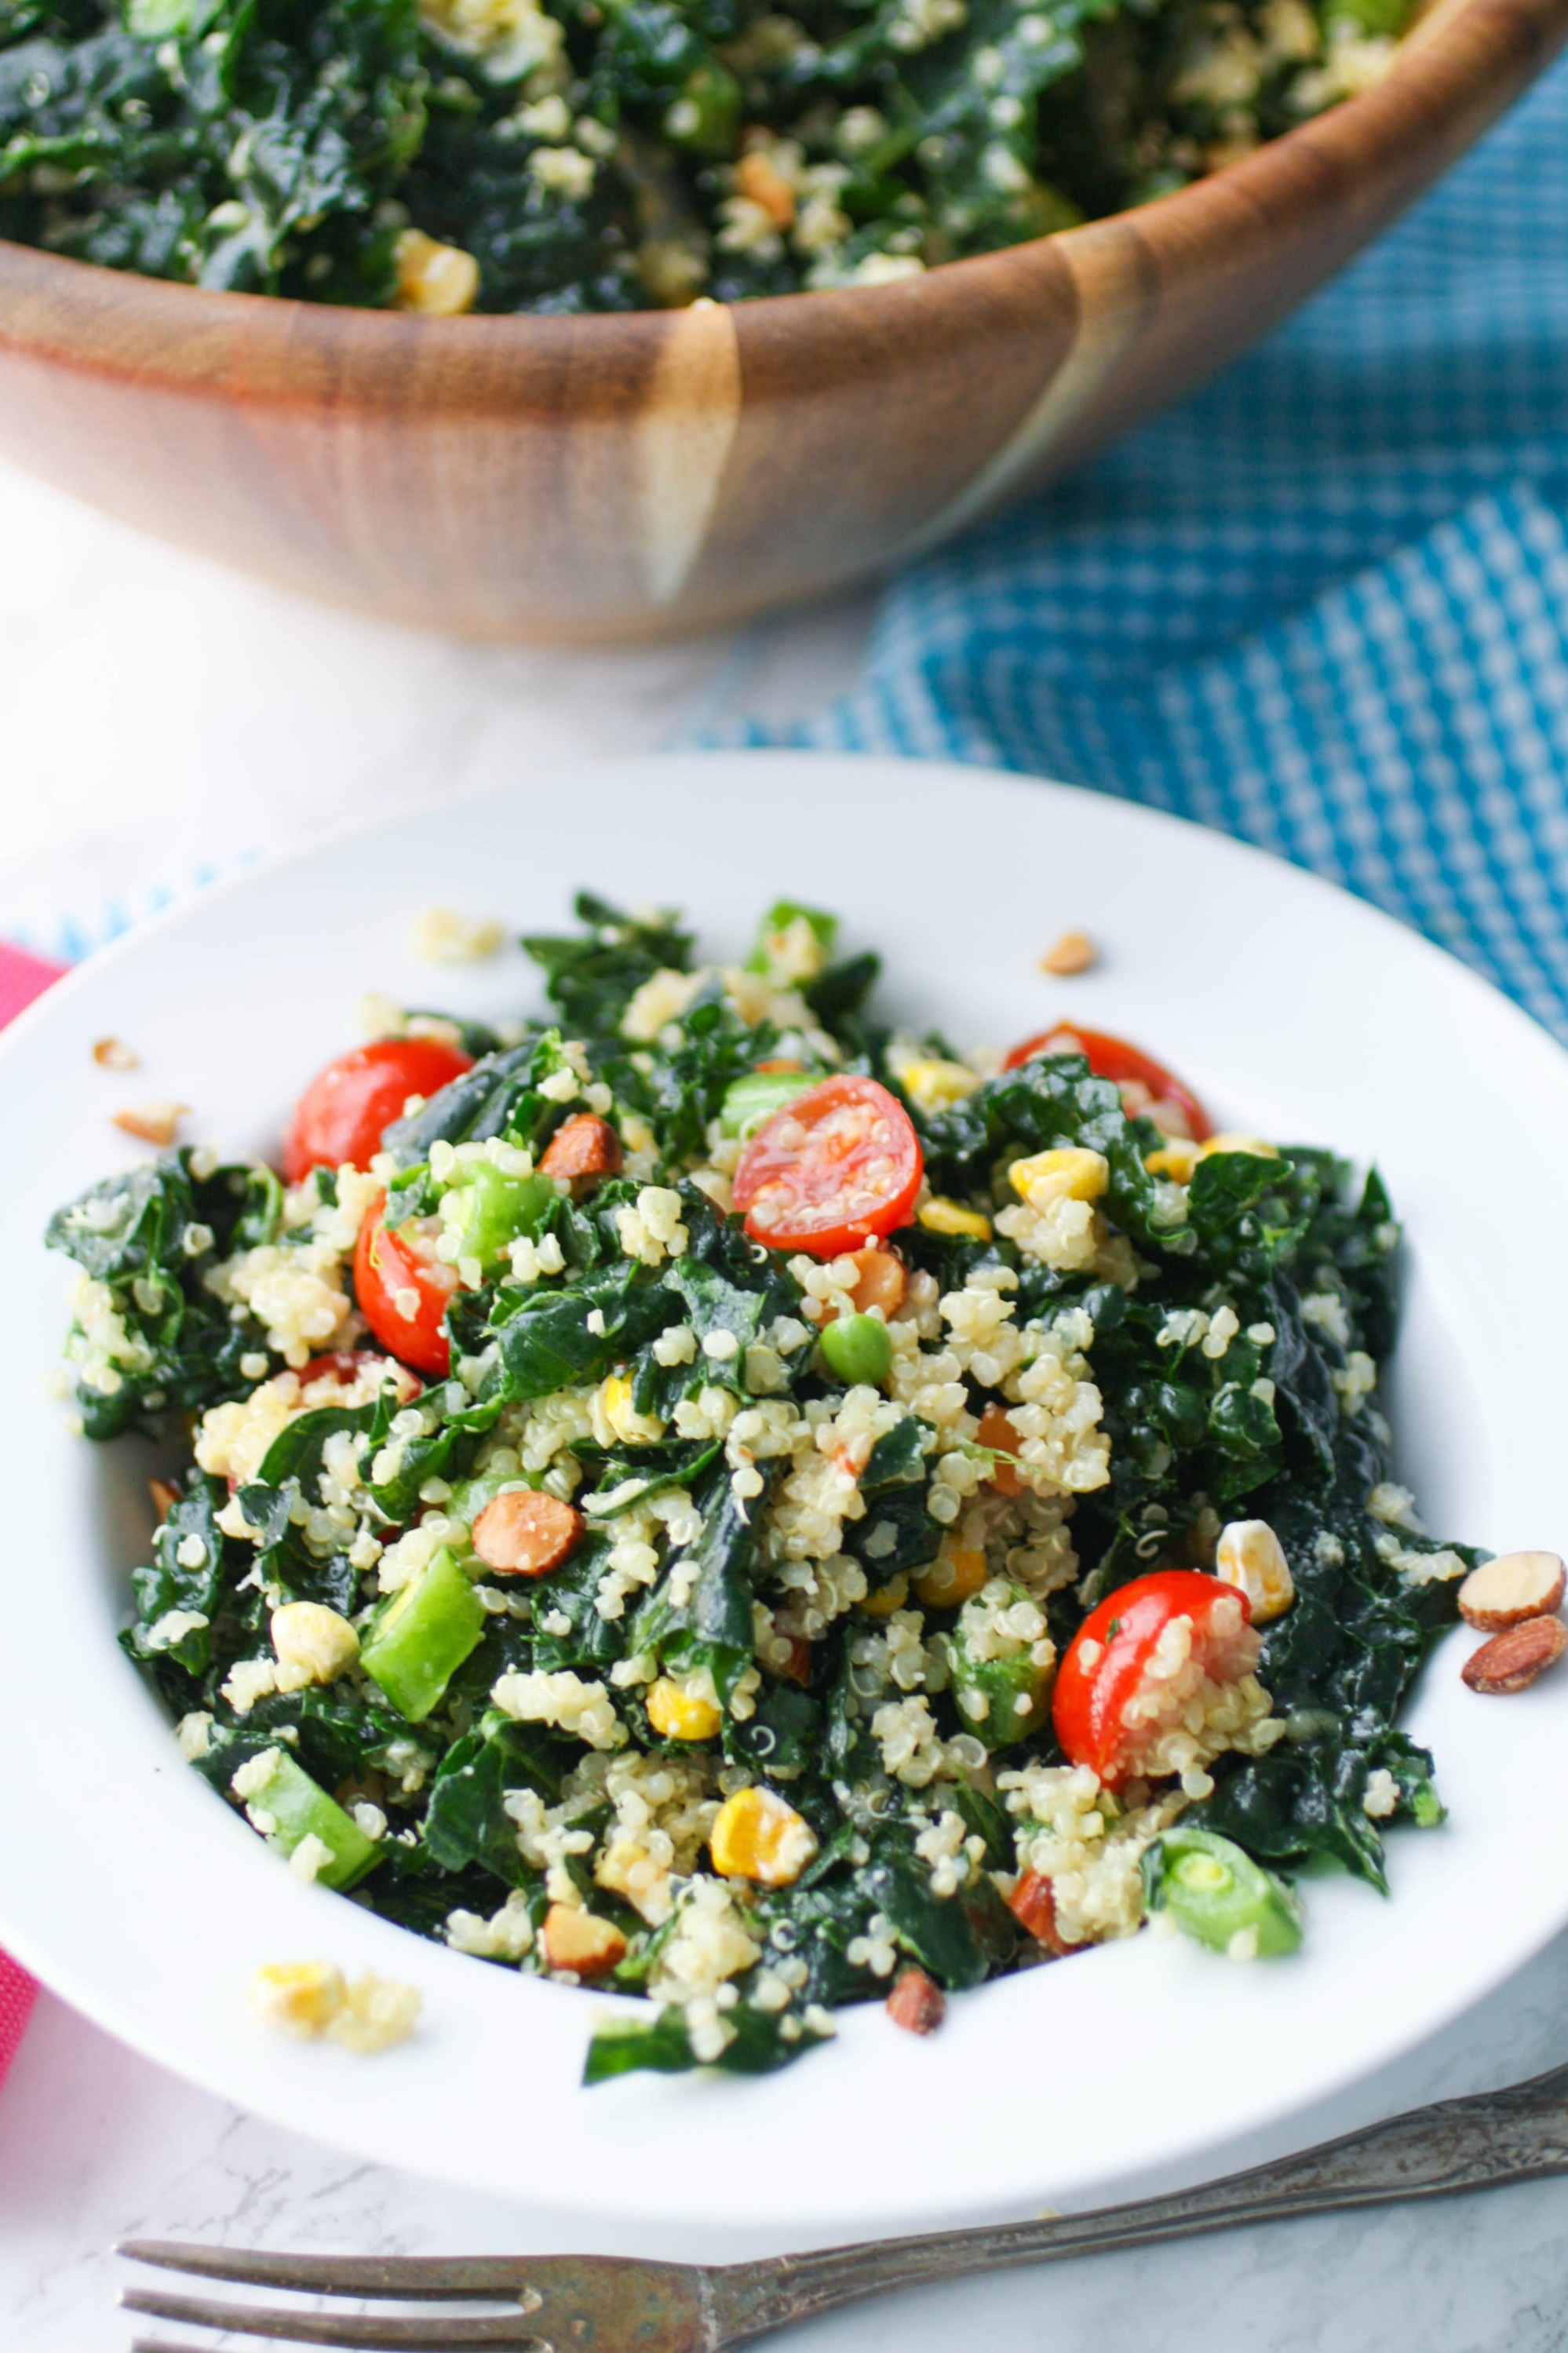 Kale and Quinoa Salad with Honey-Dijon Dressing is a delightful salad to try, soon! You'll love all the ingredients included in Kale and Quinoa Salad with Honey-Dijon Dressing.